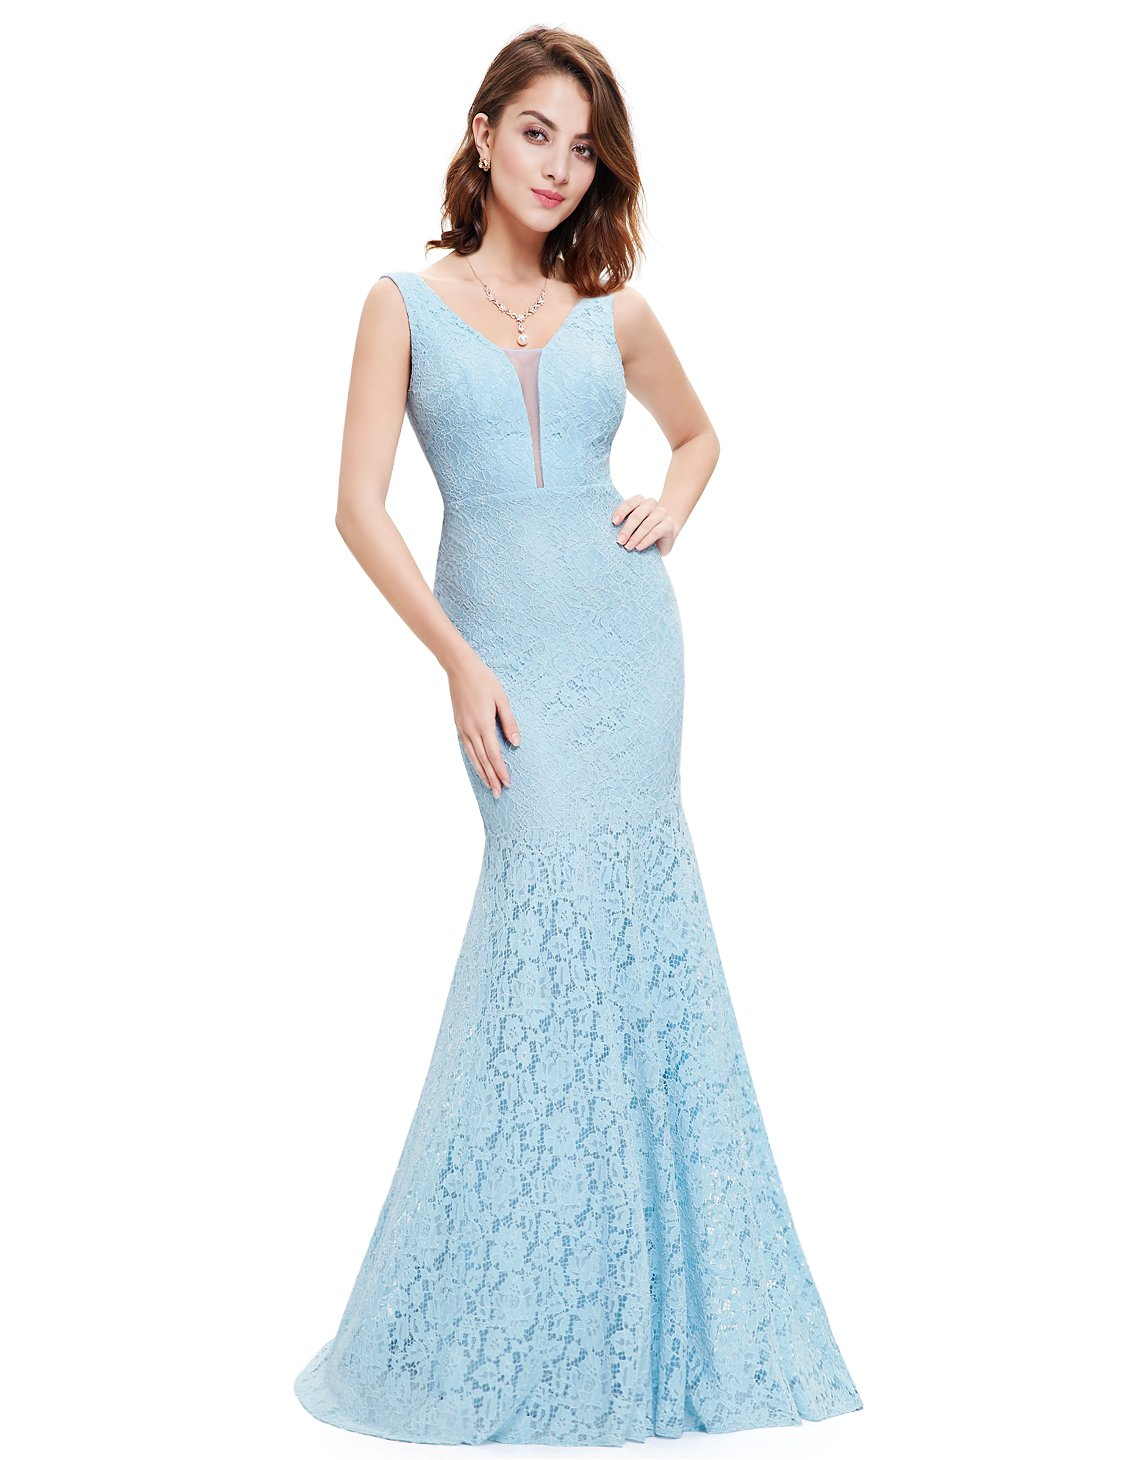 Available at Amazon: Ever-Pretty Women's Romantic Sexy Lace Floor Length V-Neck Evening Prom Dress 08838